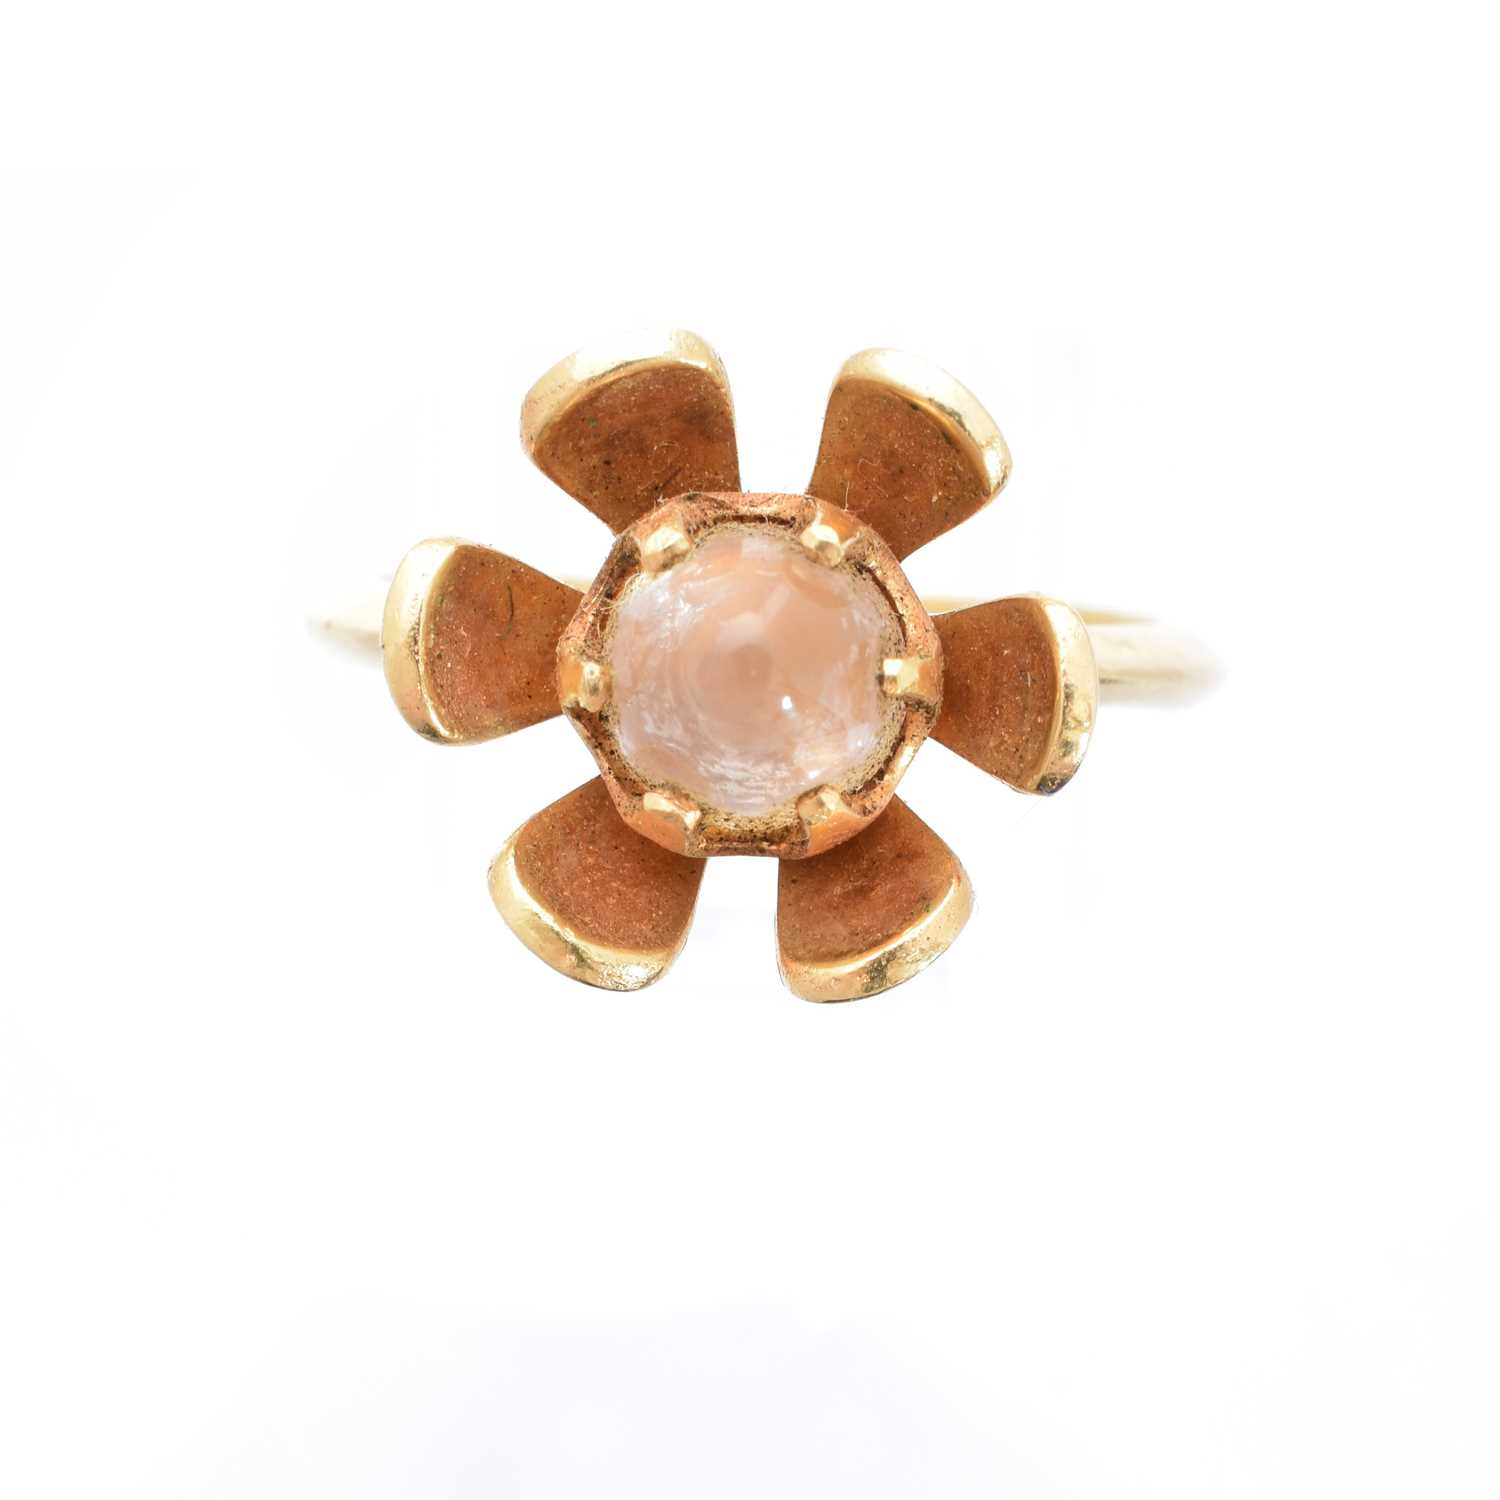 A 15ct gold moonstone dress ring, the moonstone cabochon within a floral surround, stamped N.J. Ltd, import marks for Birmingham, 1967, ring size L1/2, gross weight 4.4g.